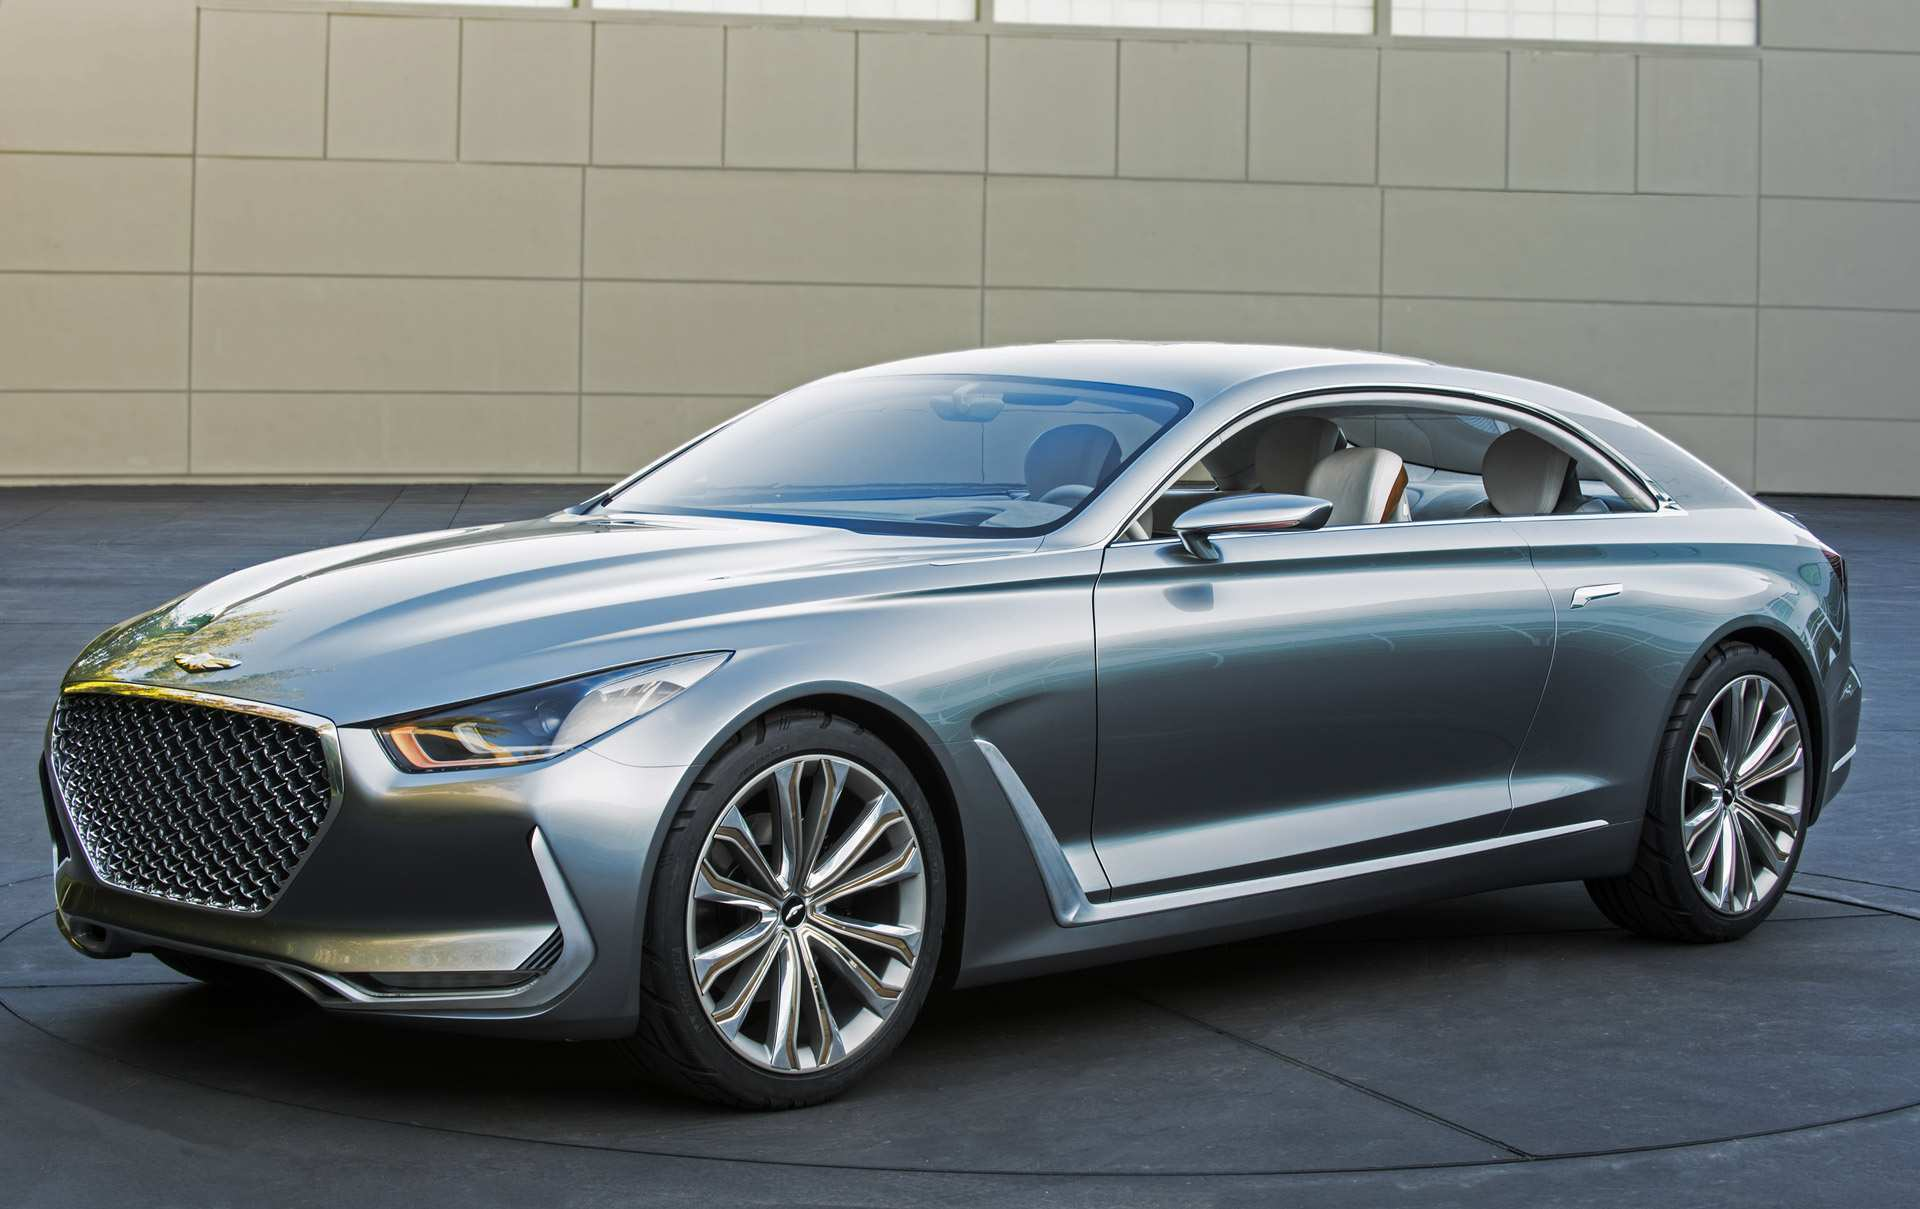 89 The Best 2020 Hyundai Genesis Coupe Concept And Review